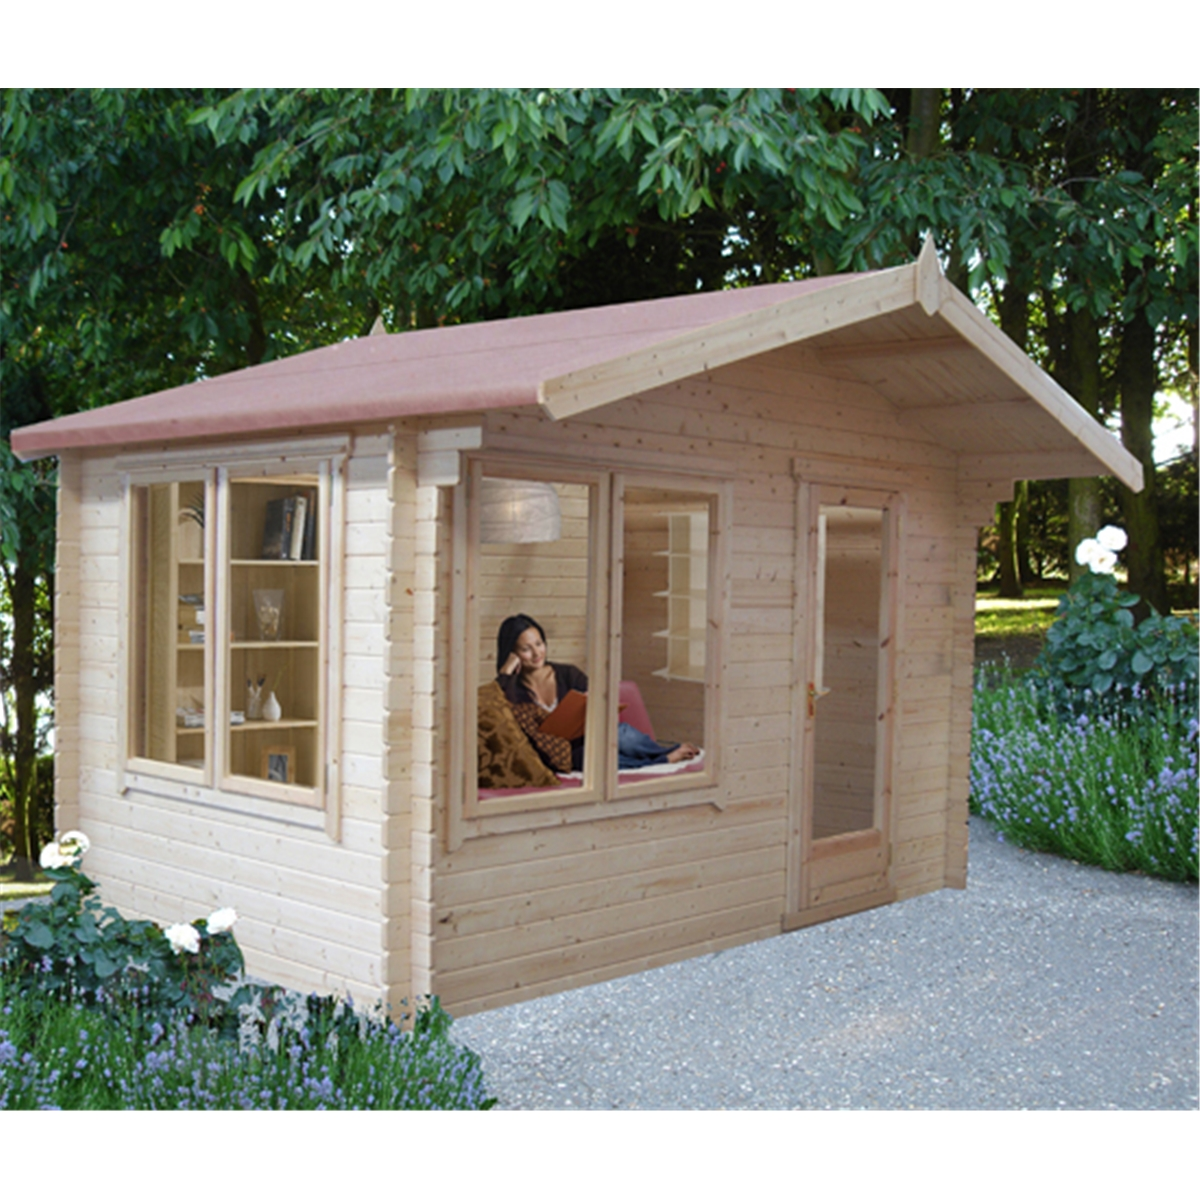 Garden Houses & Buildings 2.99m x 2.99m Log Cabin With Fully Glazed Single Door - 28mm Wall Thickness